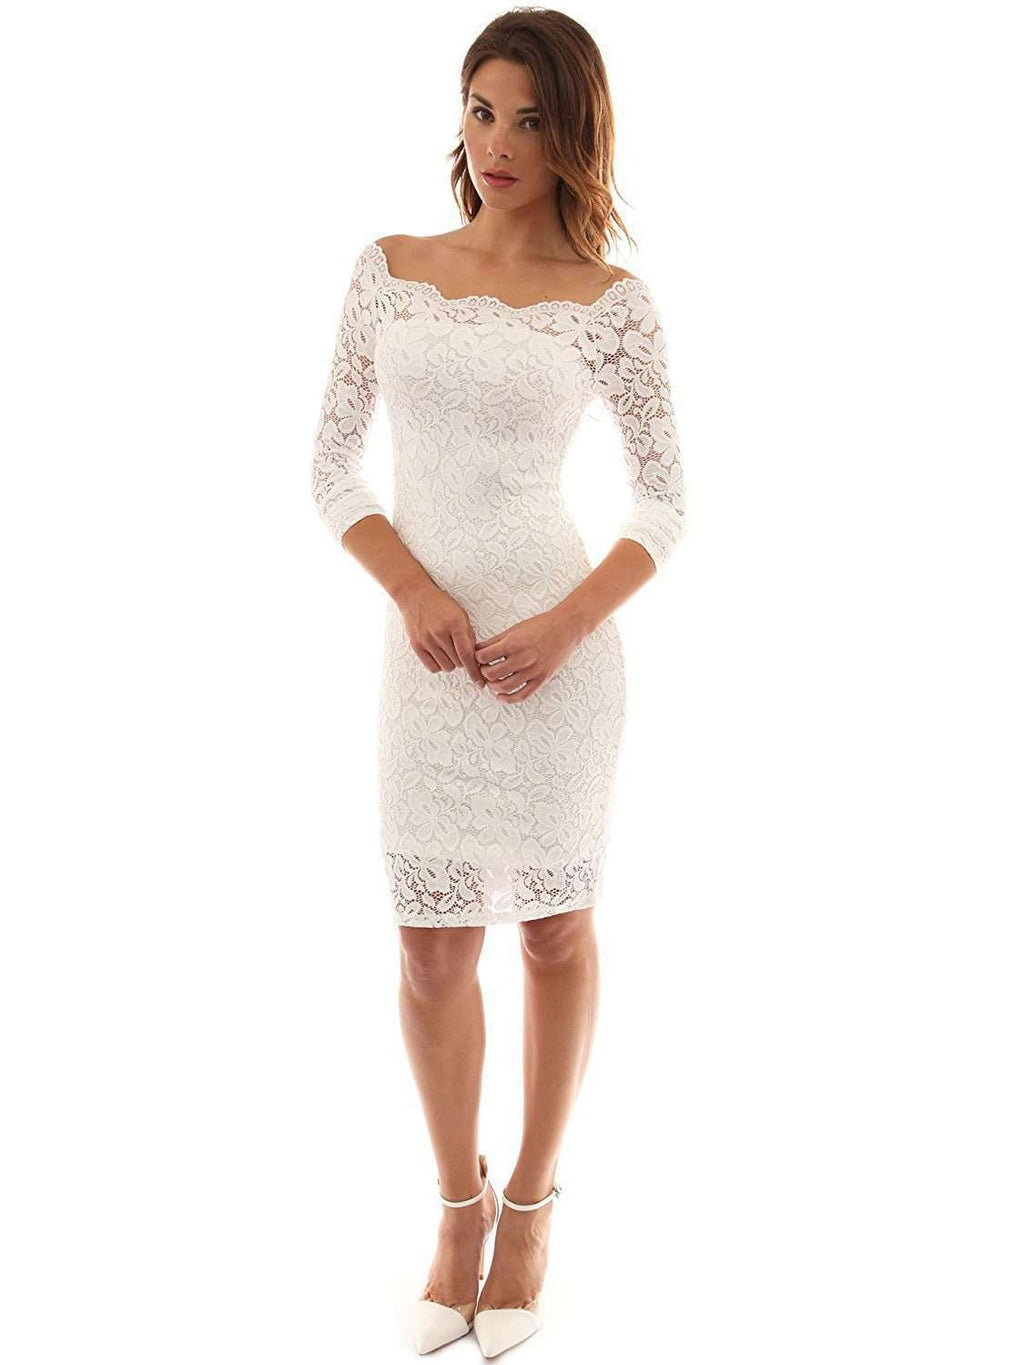 Lace Veil Solid Color Dress